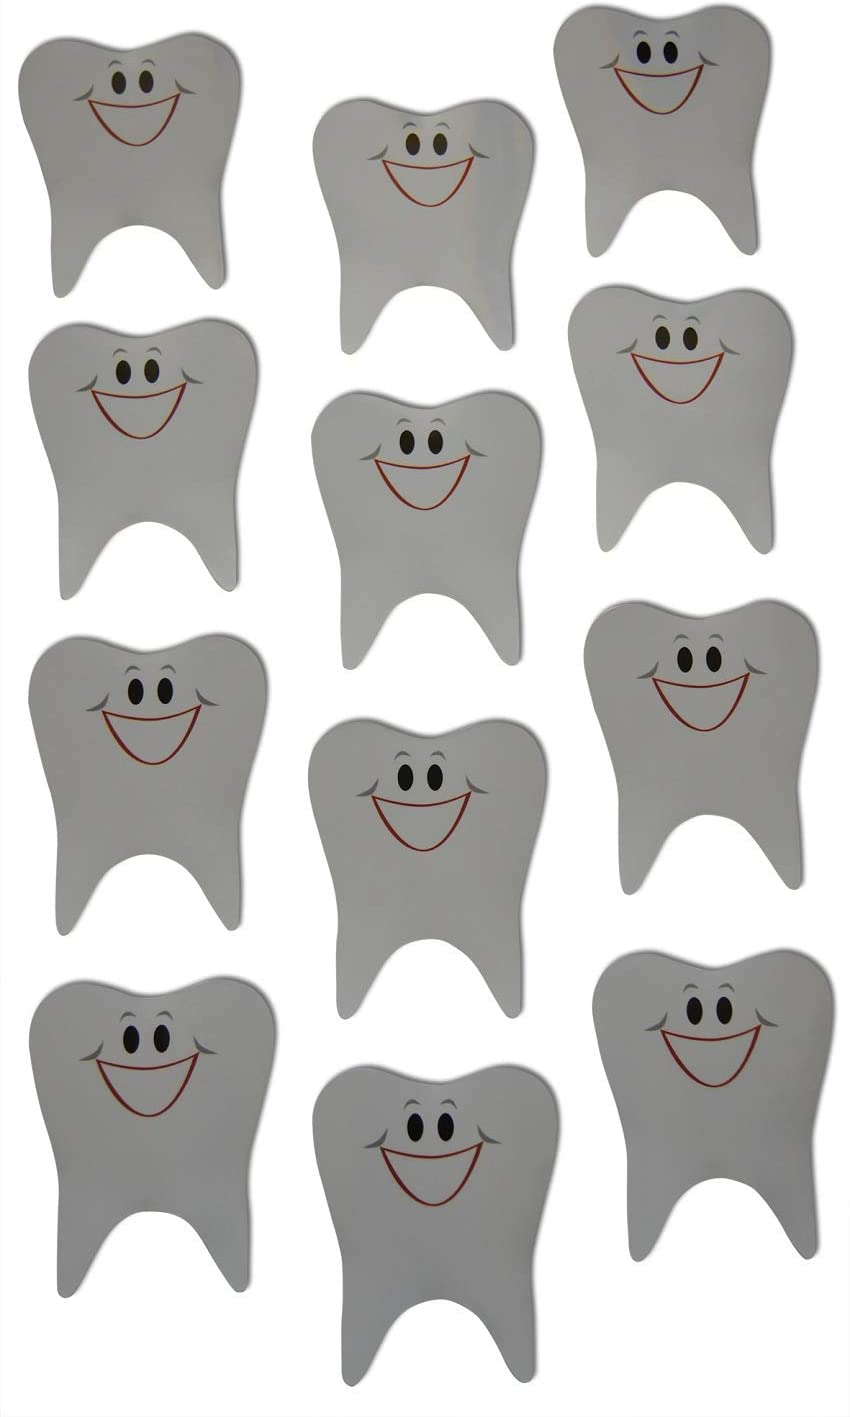 Novel Merk Healthy Tooth Smiling Small Refrigerator Magnets Set for Kids Party Favors & School Carnival Prizes Miniature Design (12 Pieces)